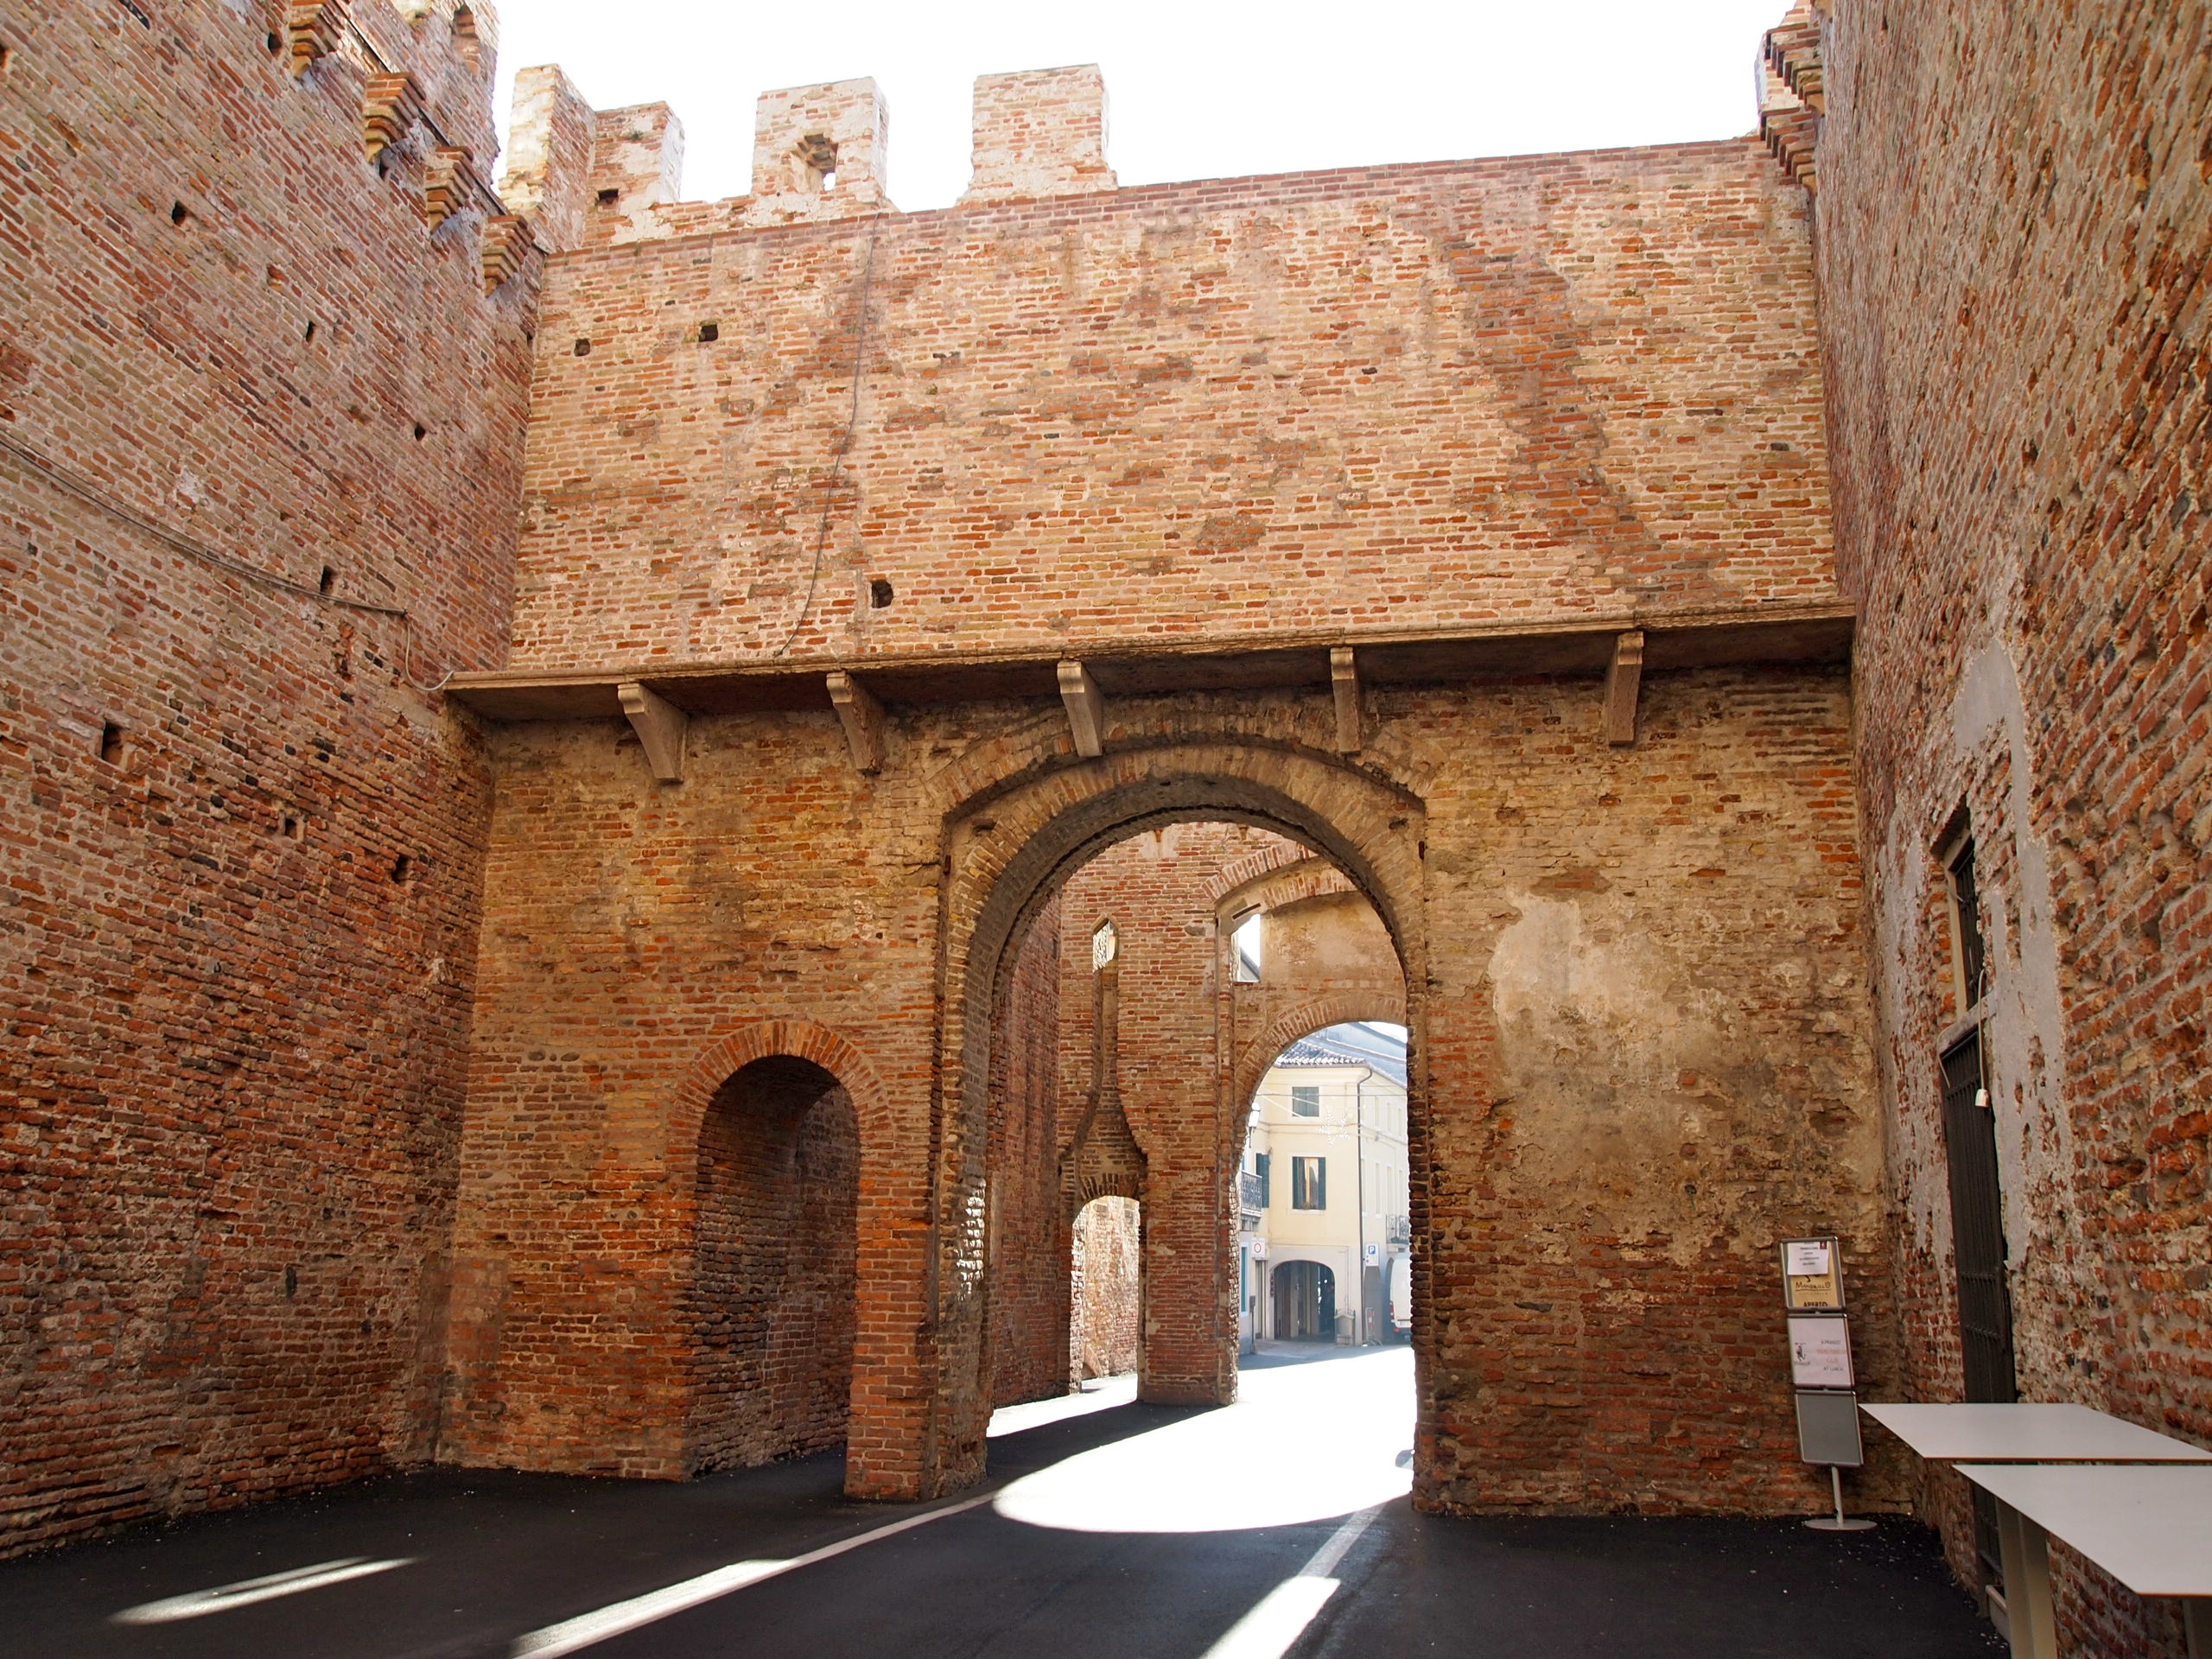 one of the 4 entrance to the city of Cittadella